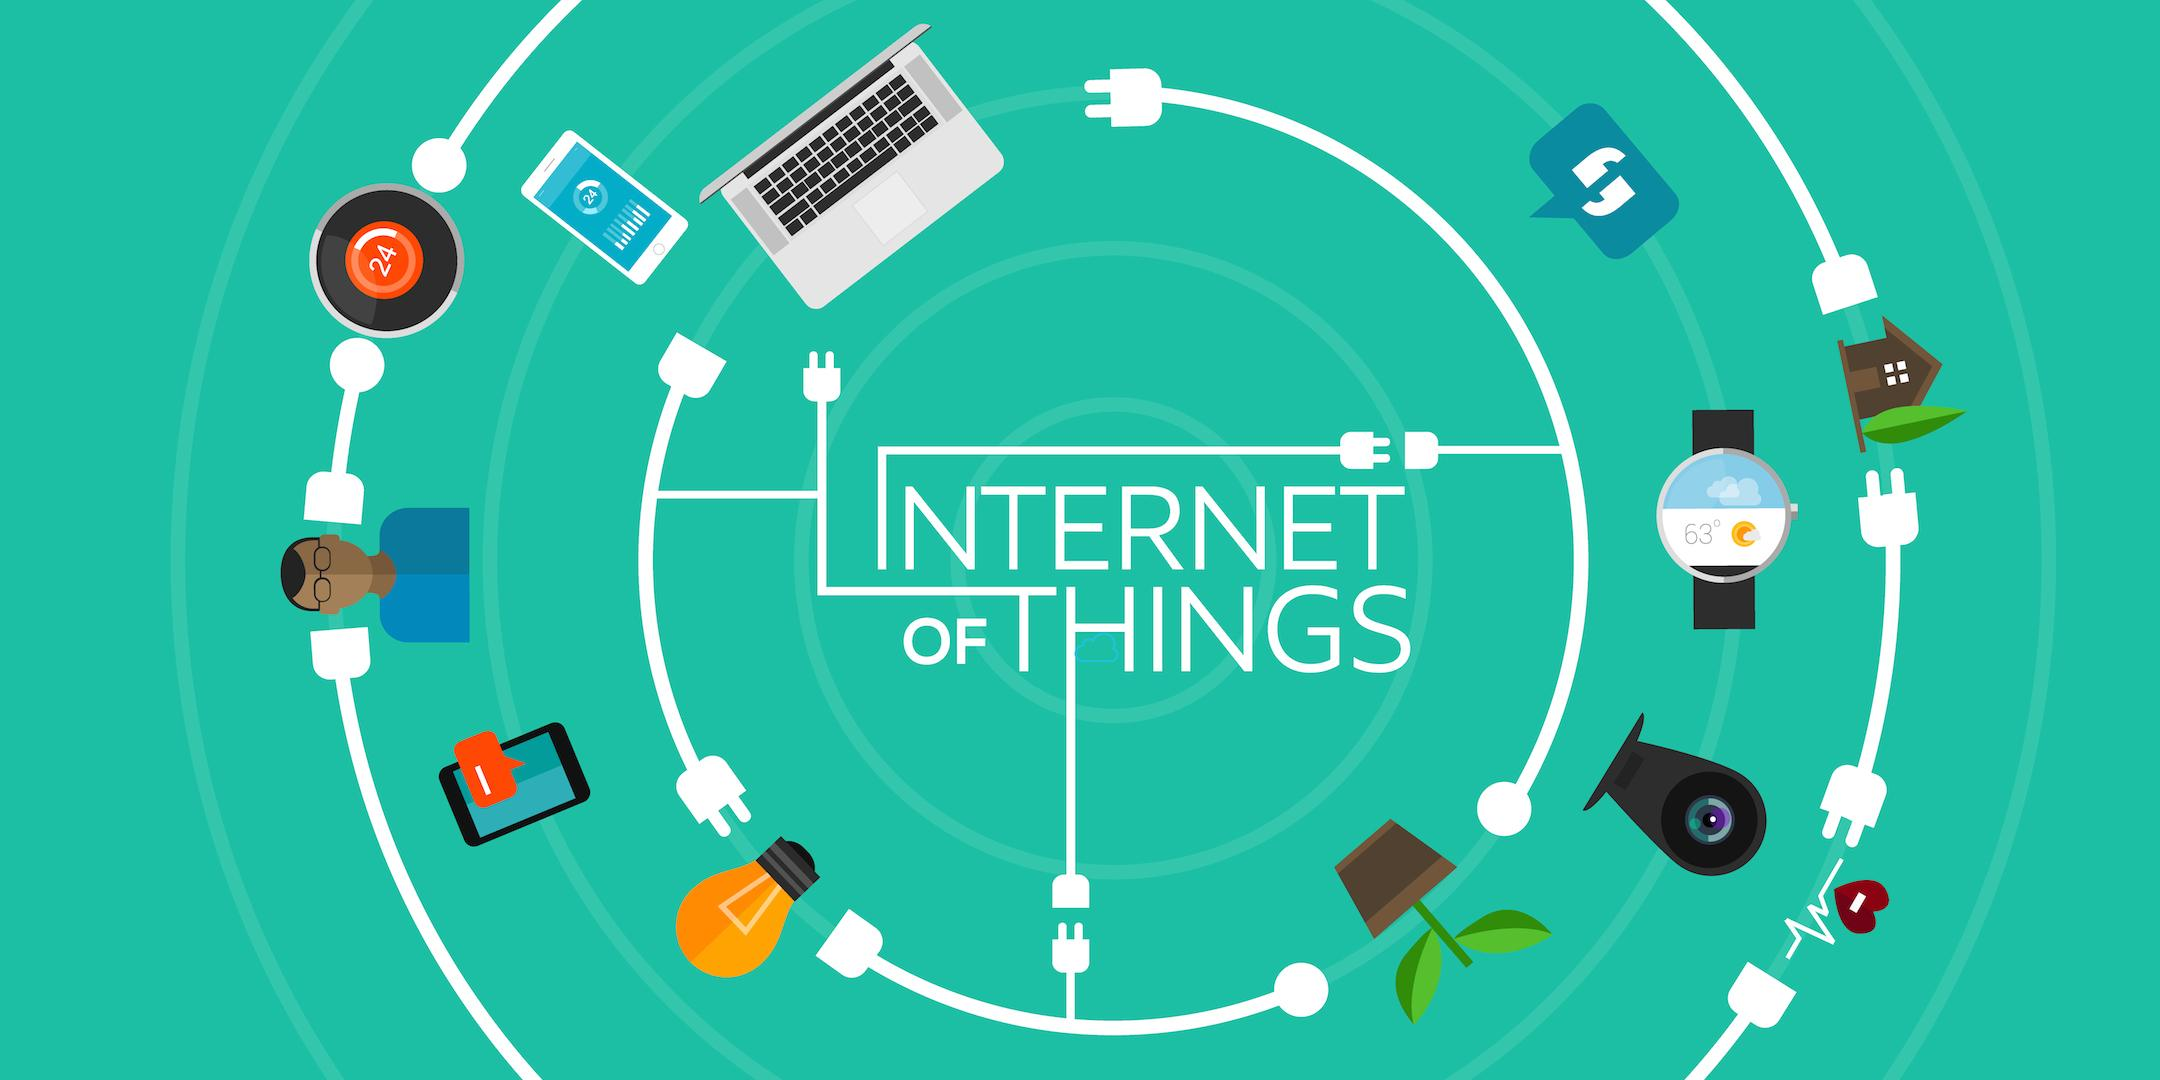 The internet of things image